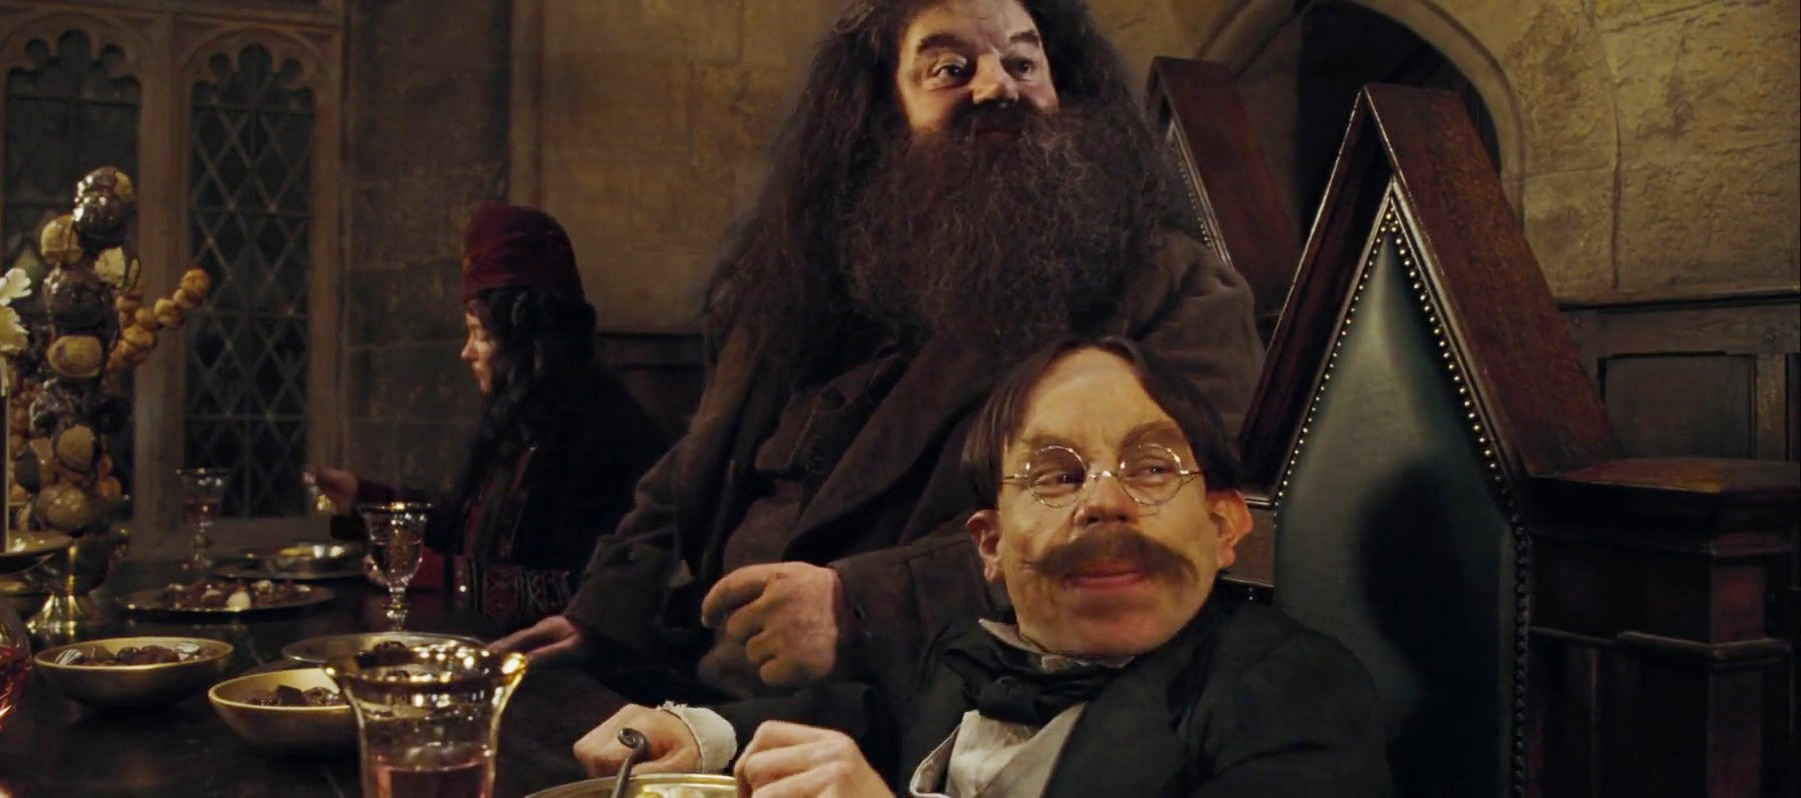 Harry potter director reveals his one regret about hagrid What house was hagrid in